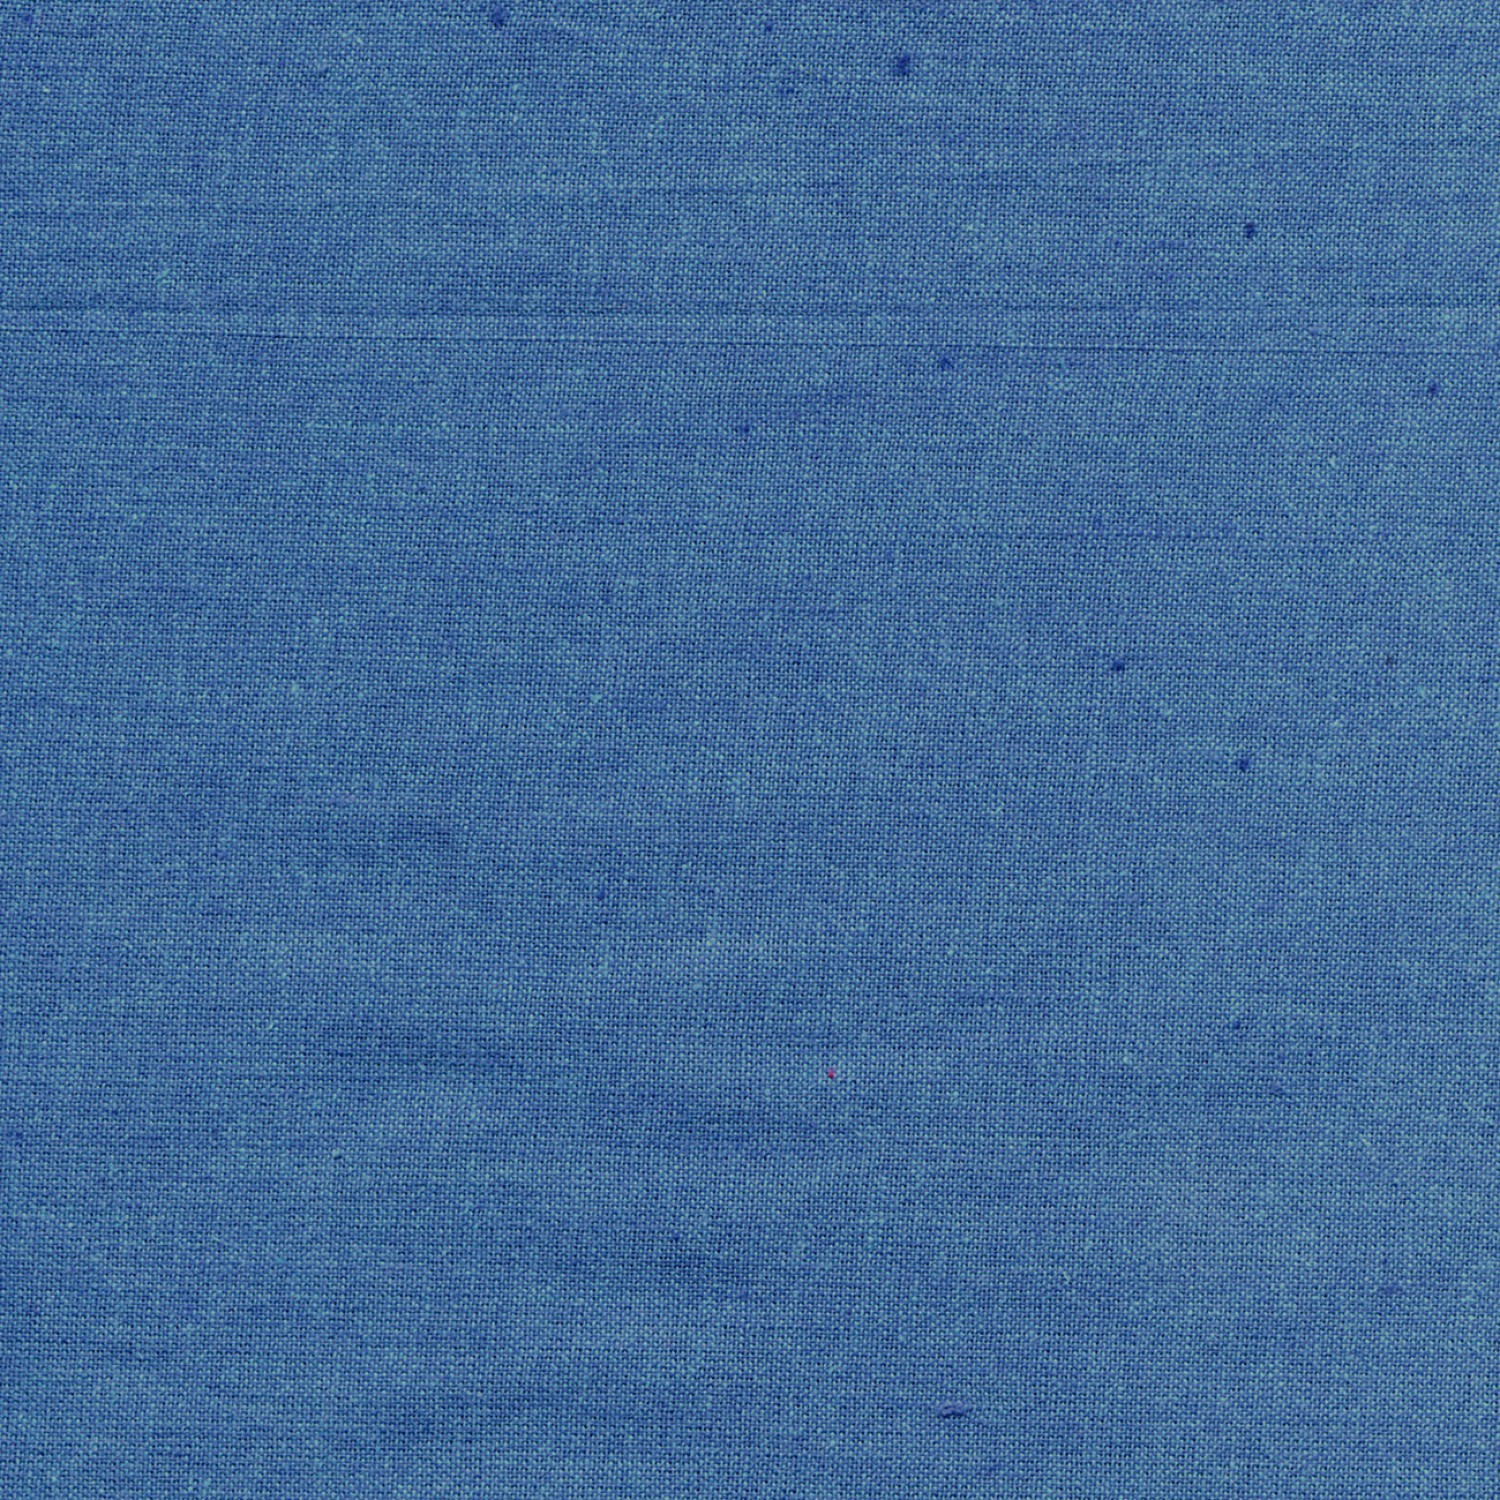 "Peppered Cotton 108"" Quilt Back - Blue Jay"